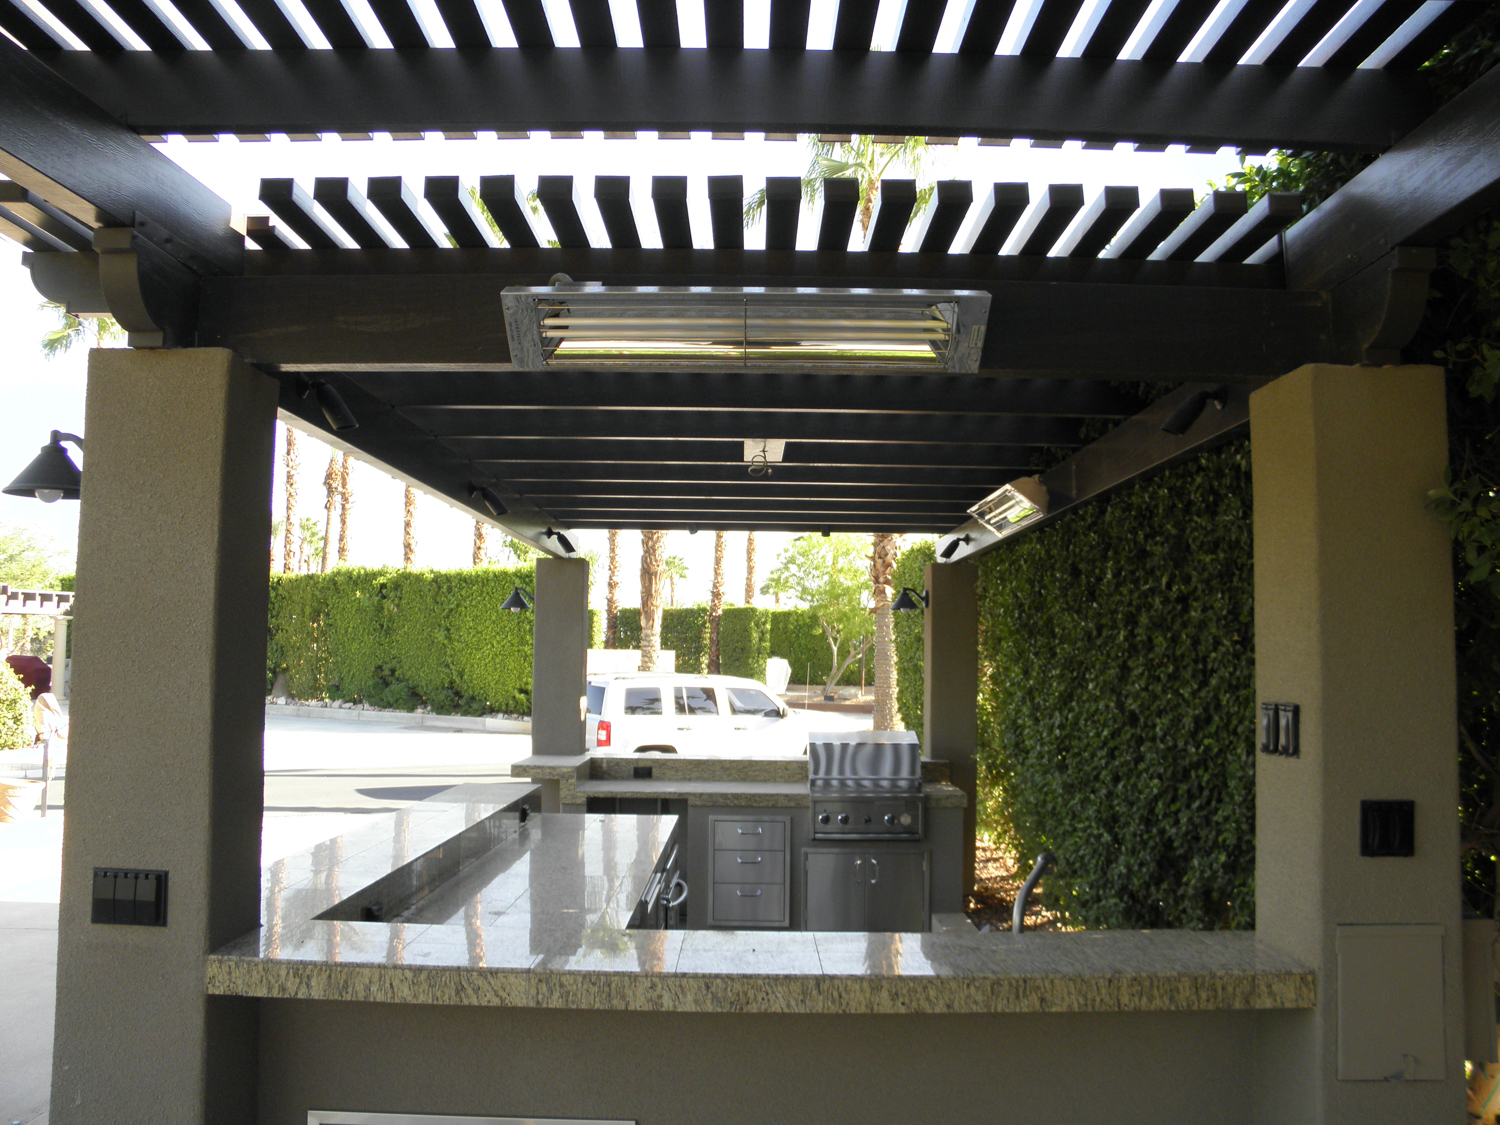 Custom Freestanding Patio Cover with Lights, Heater, Fan in Rancho Mirage, CA 92270